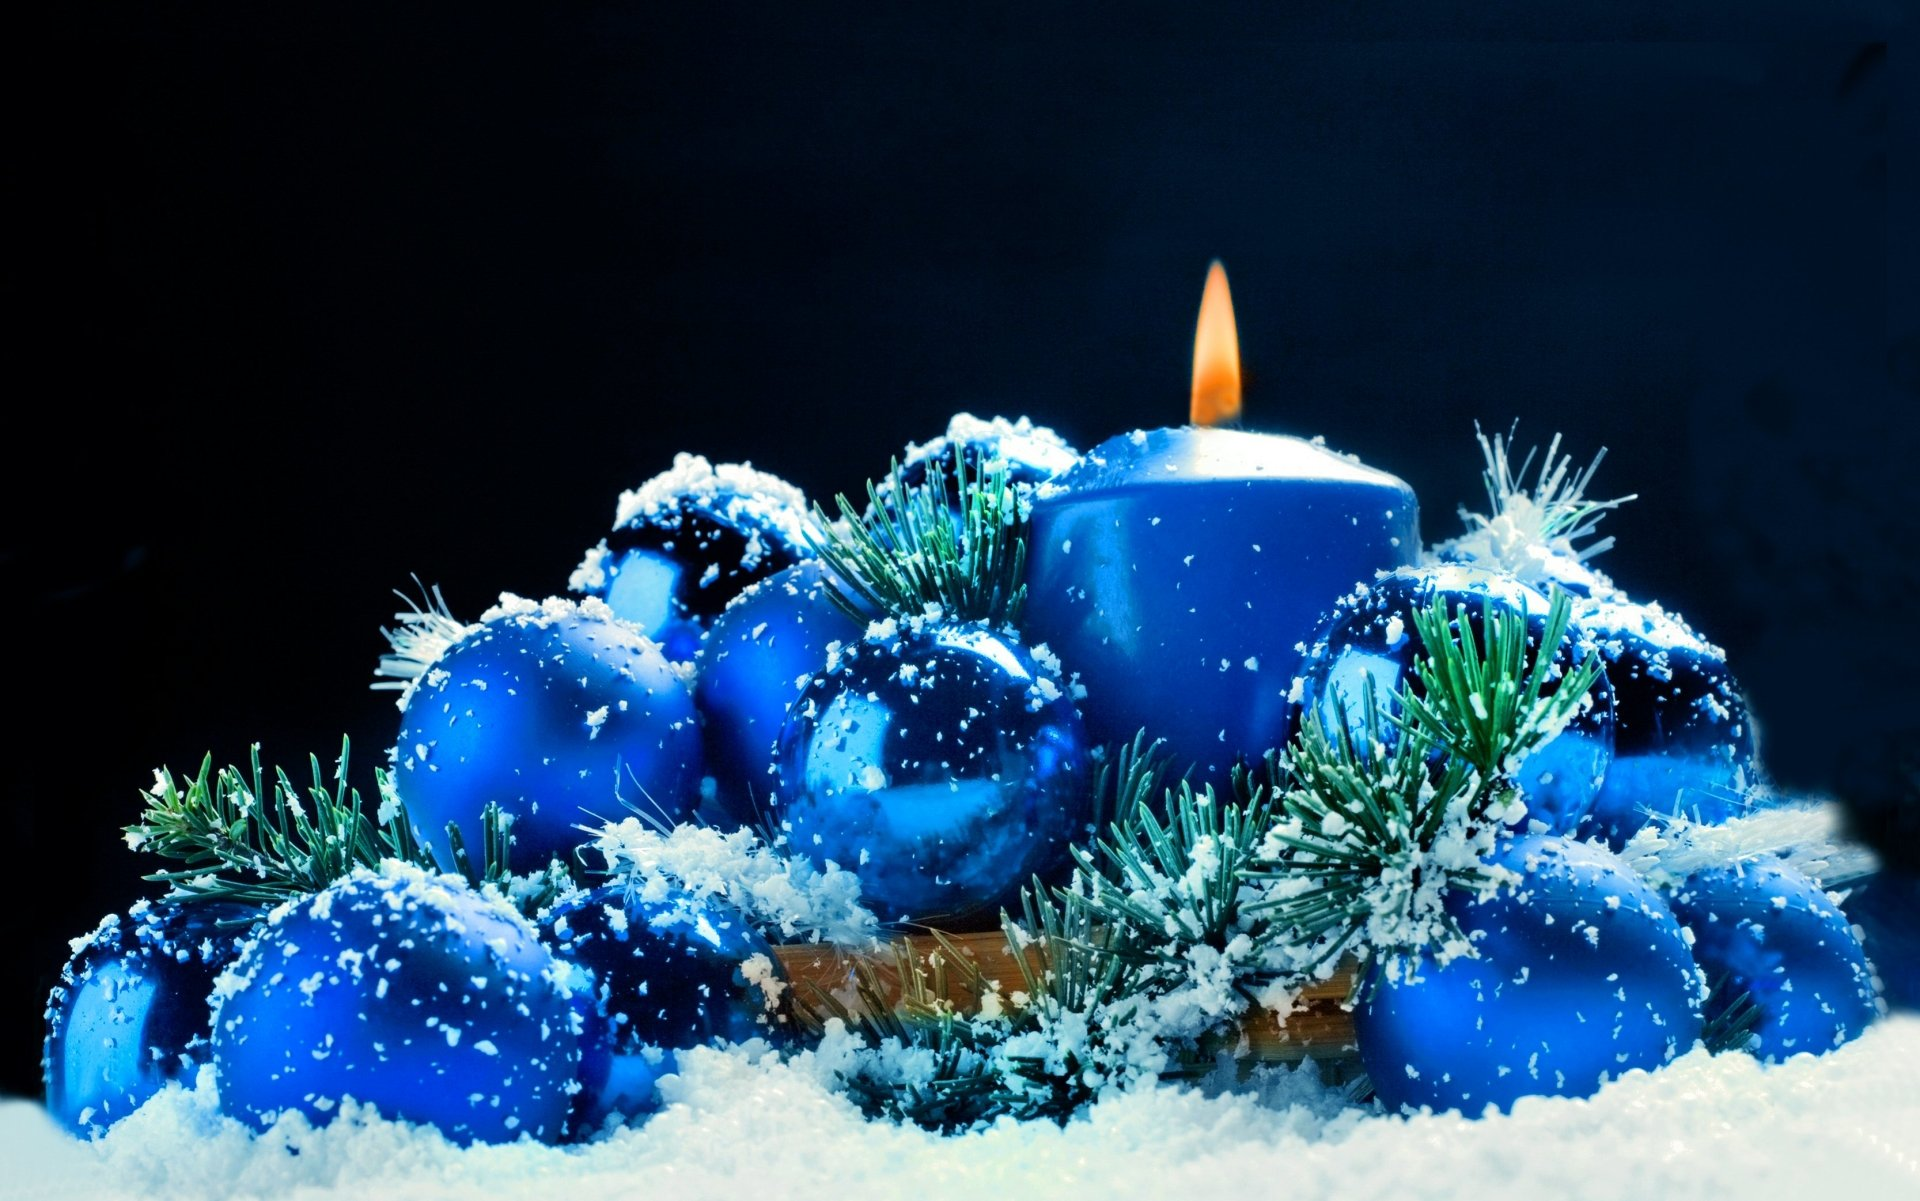 Holiday - Christmas  Blue Christmas Ornaments Candle Snow Wallpaper